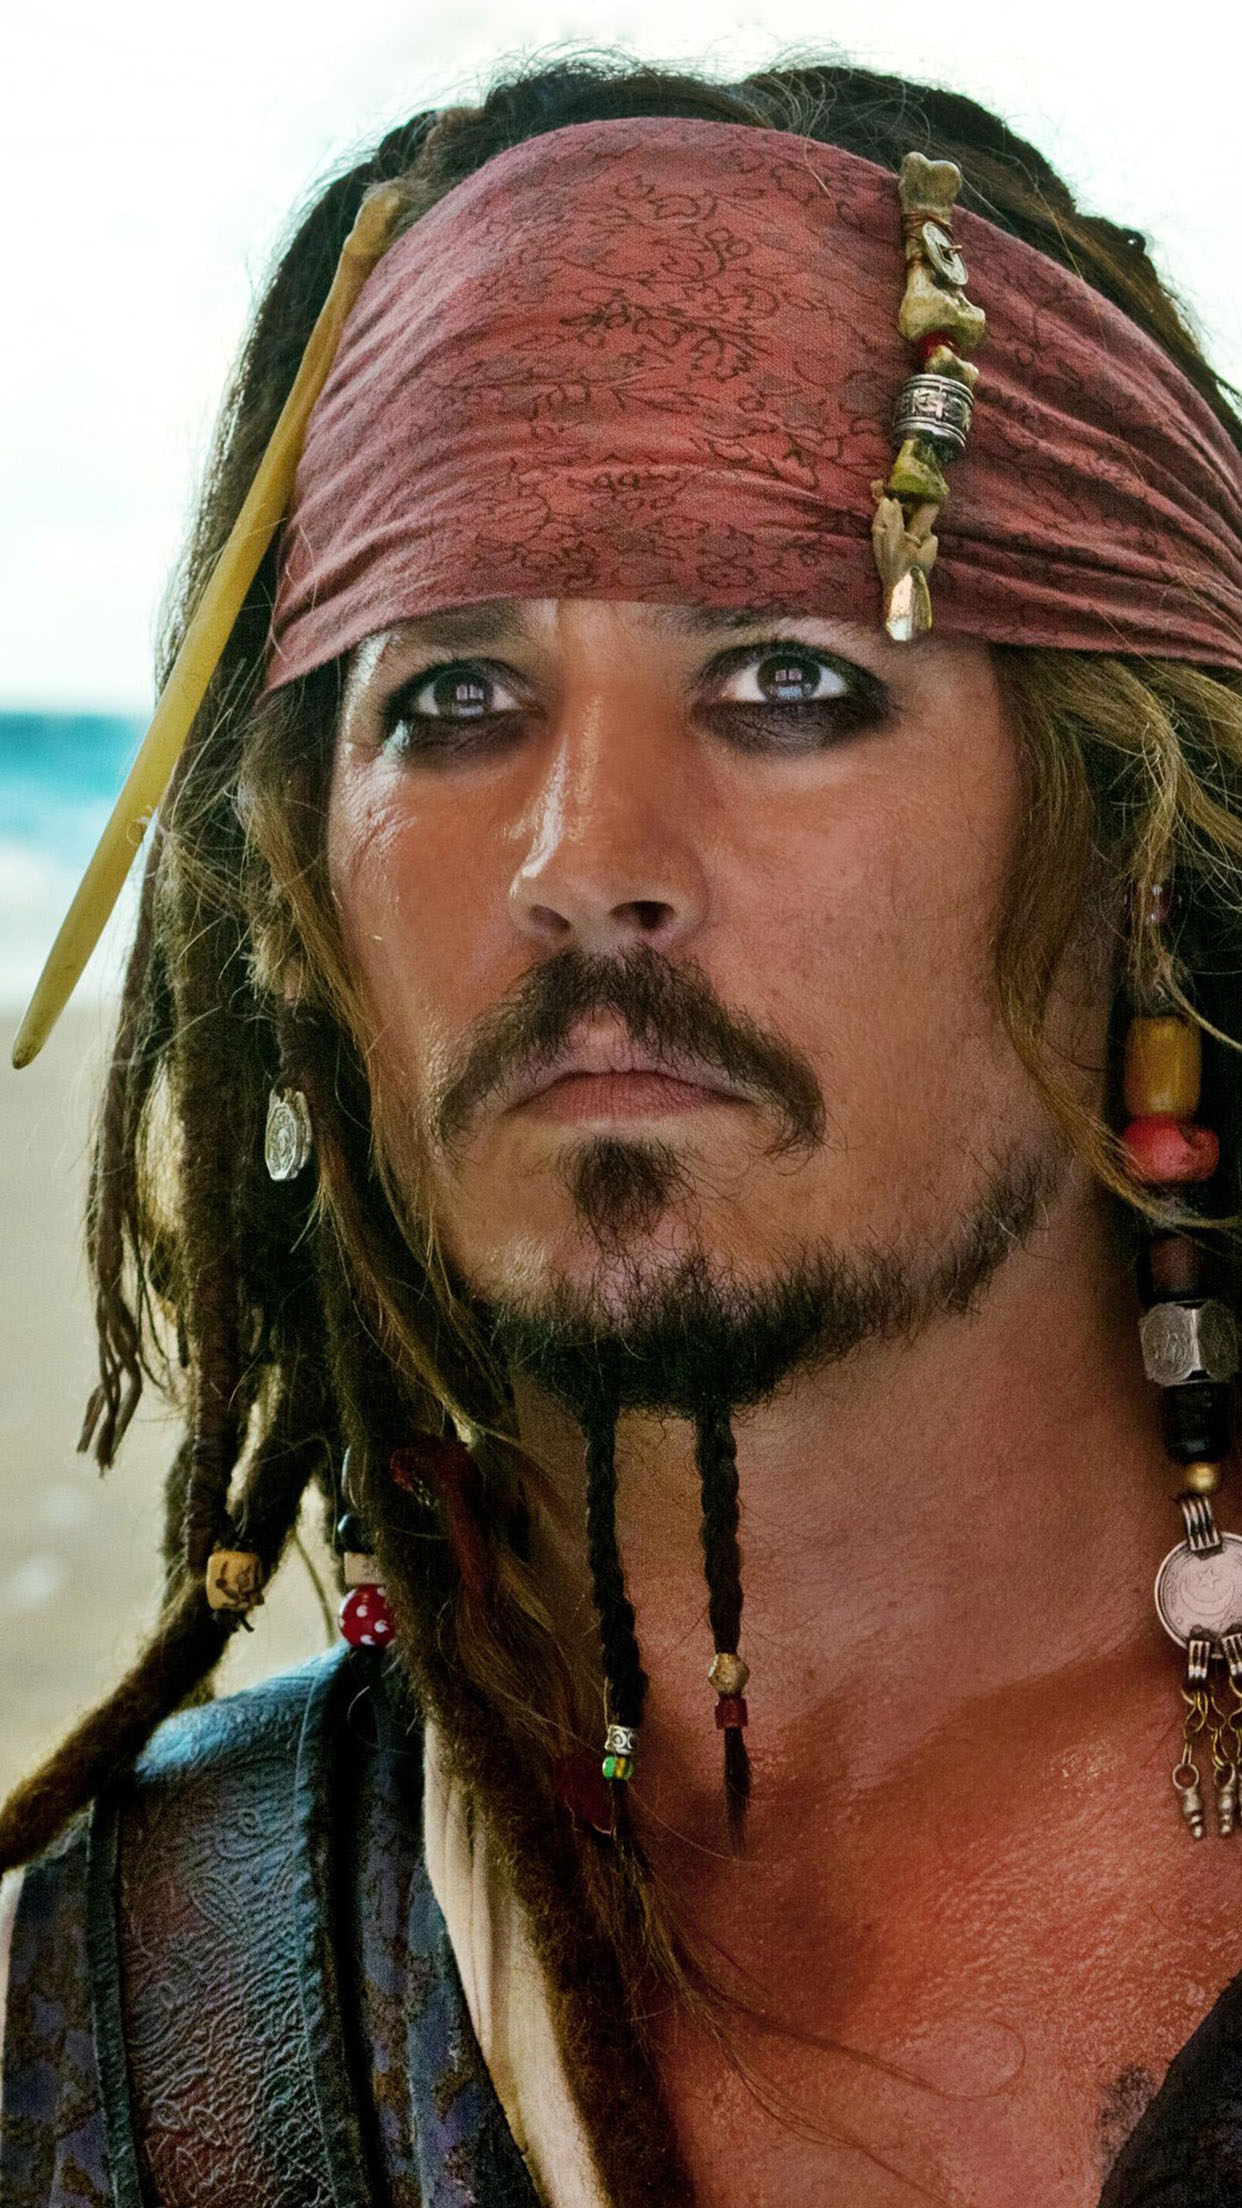 Captain Jack Sparrow Captain Jack Sparrow 1 3Wallpapers iPhone Parallax Captain Jack Sparrow 1